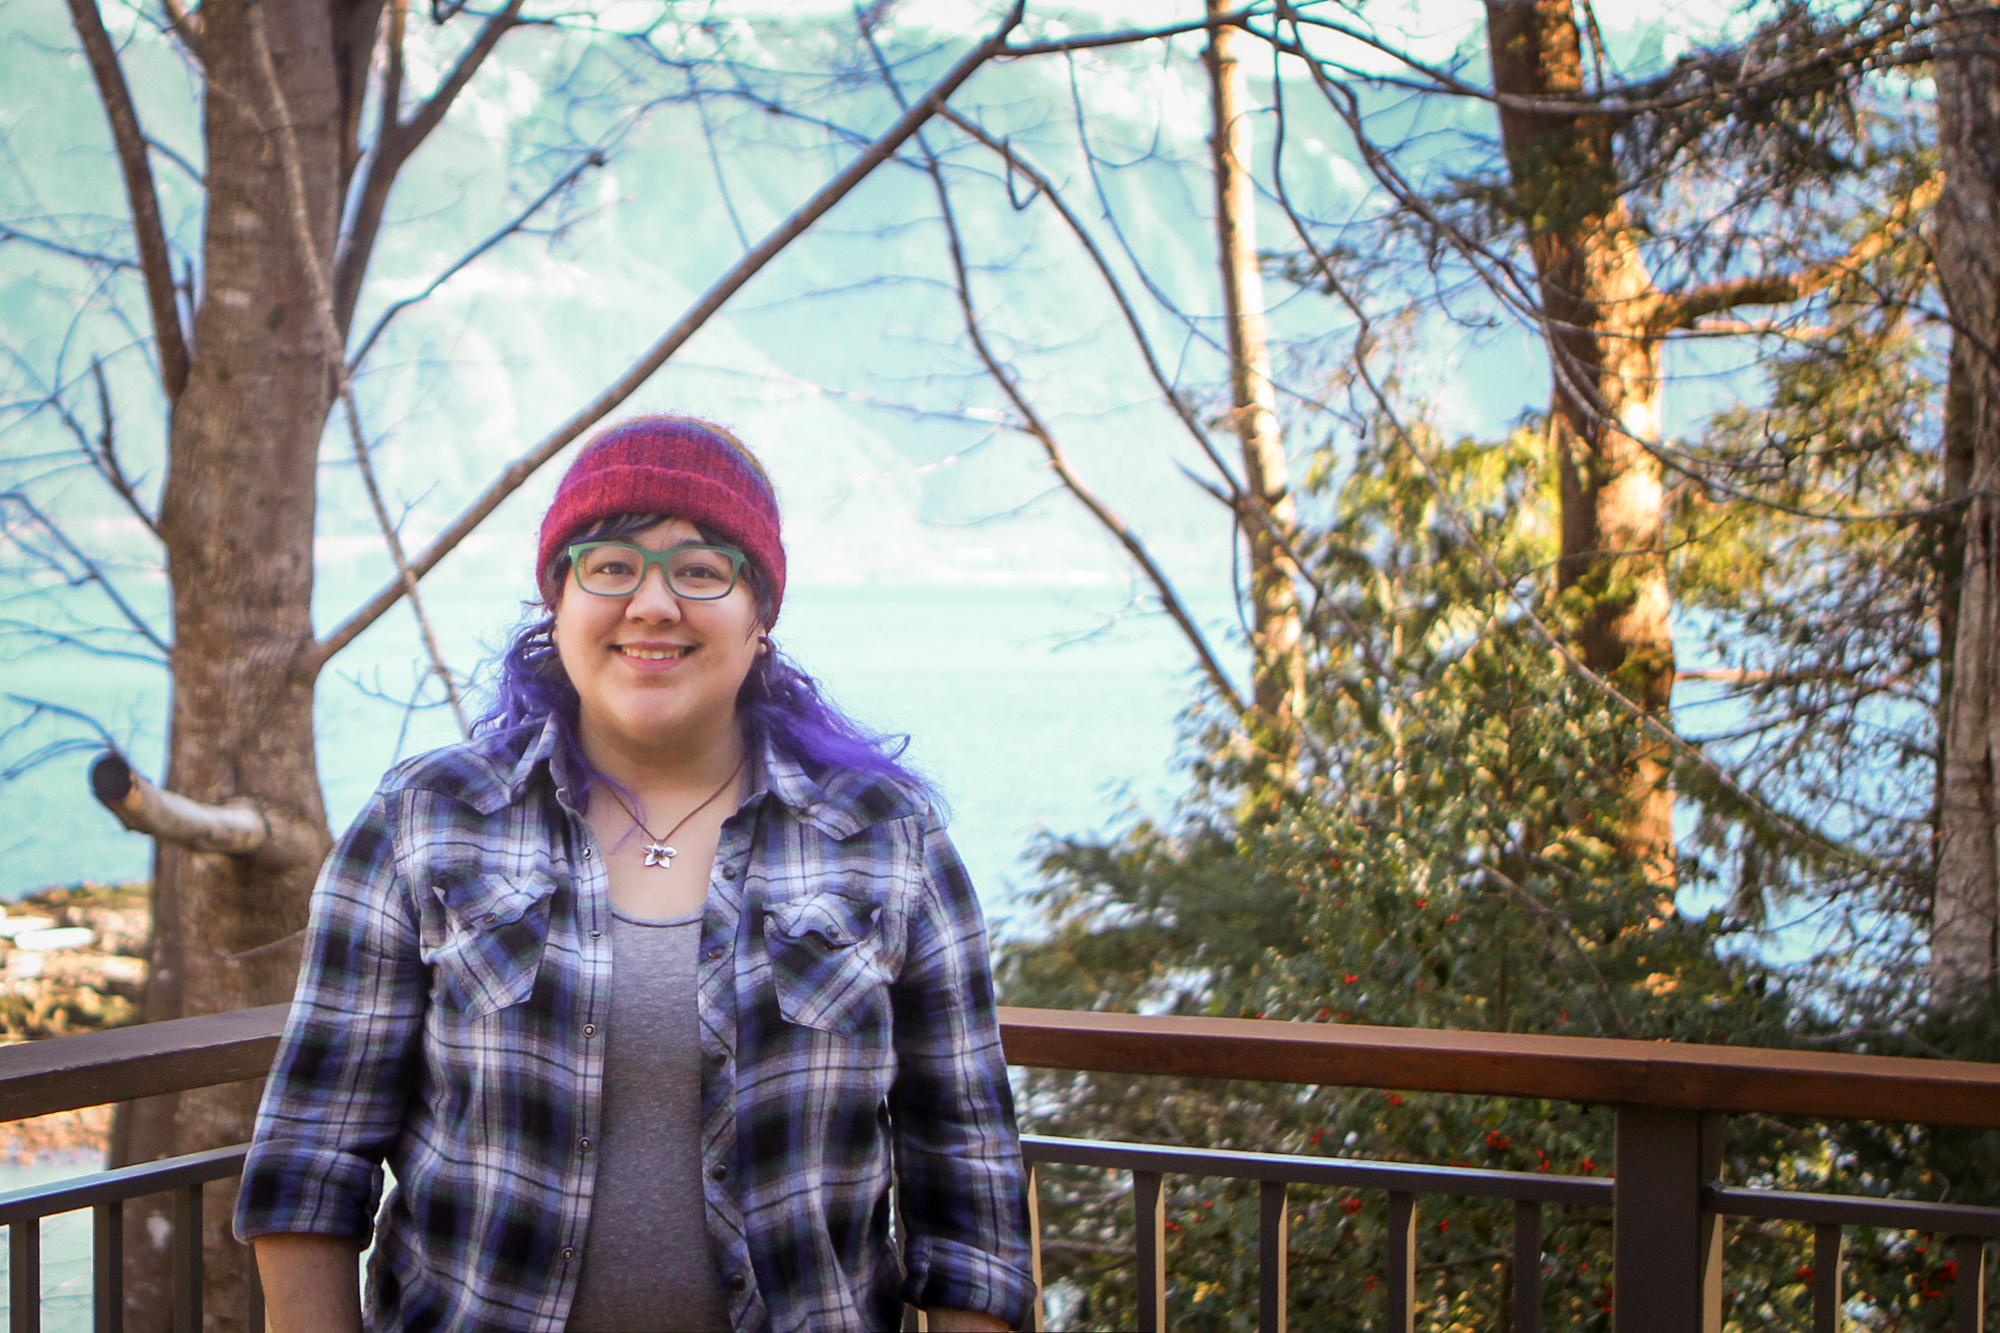 Me, being queer outdoors on Gambier island.